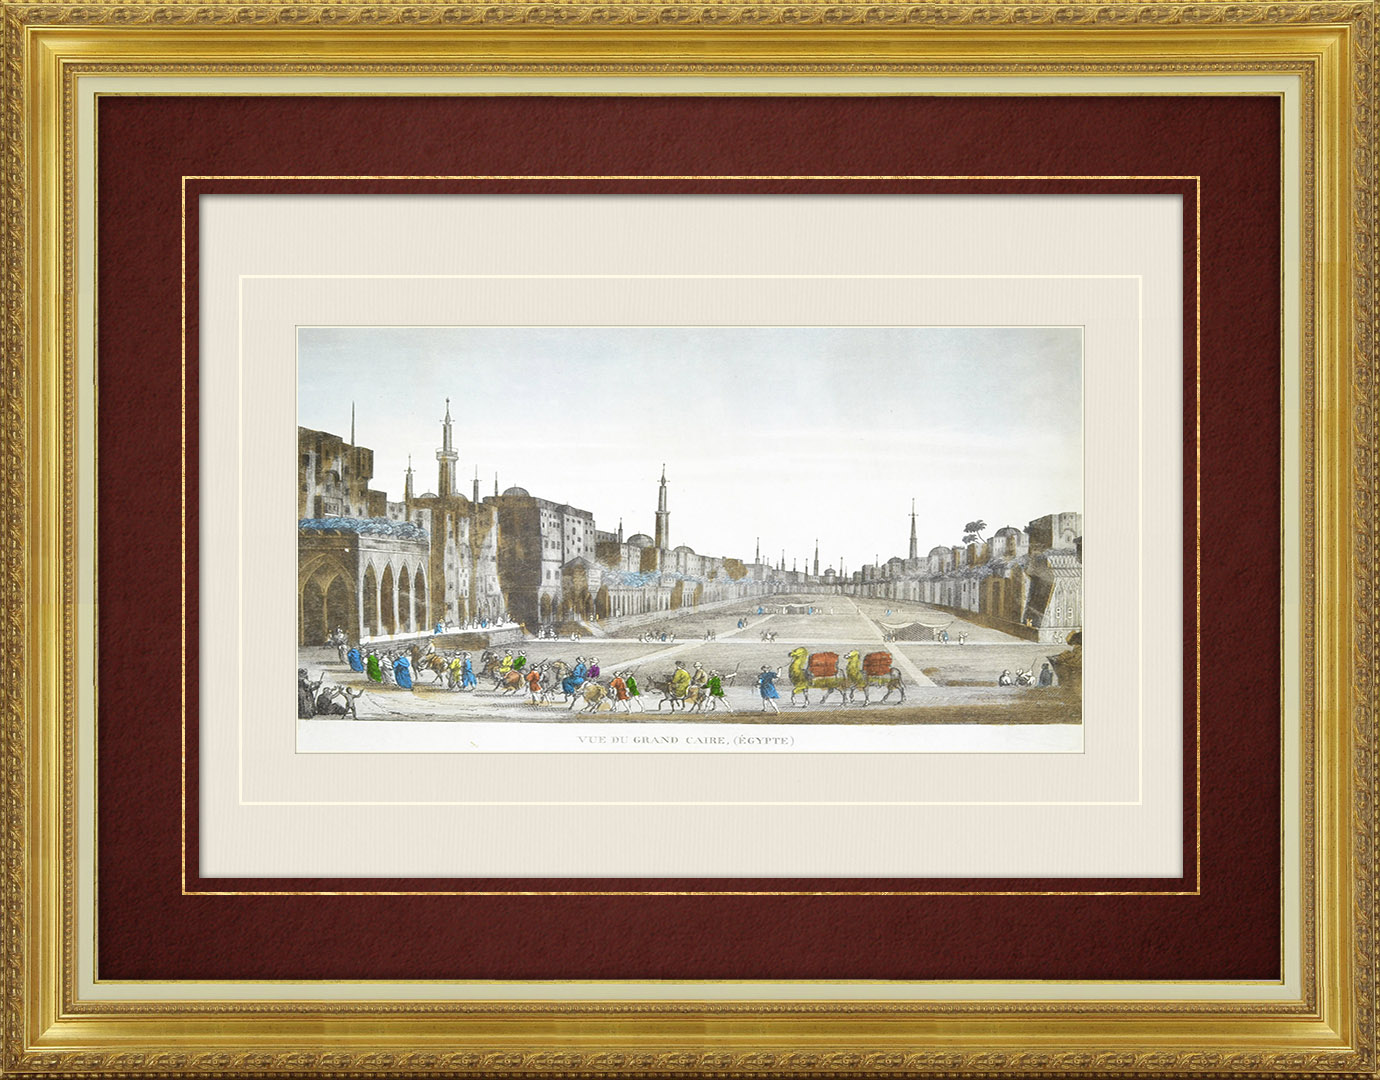 19th Century optical view in original watercolors of Cairo (Egypt)